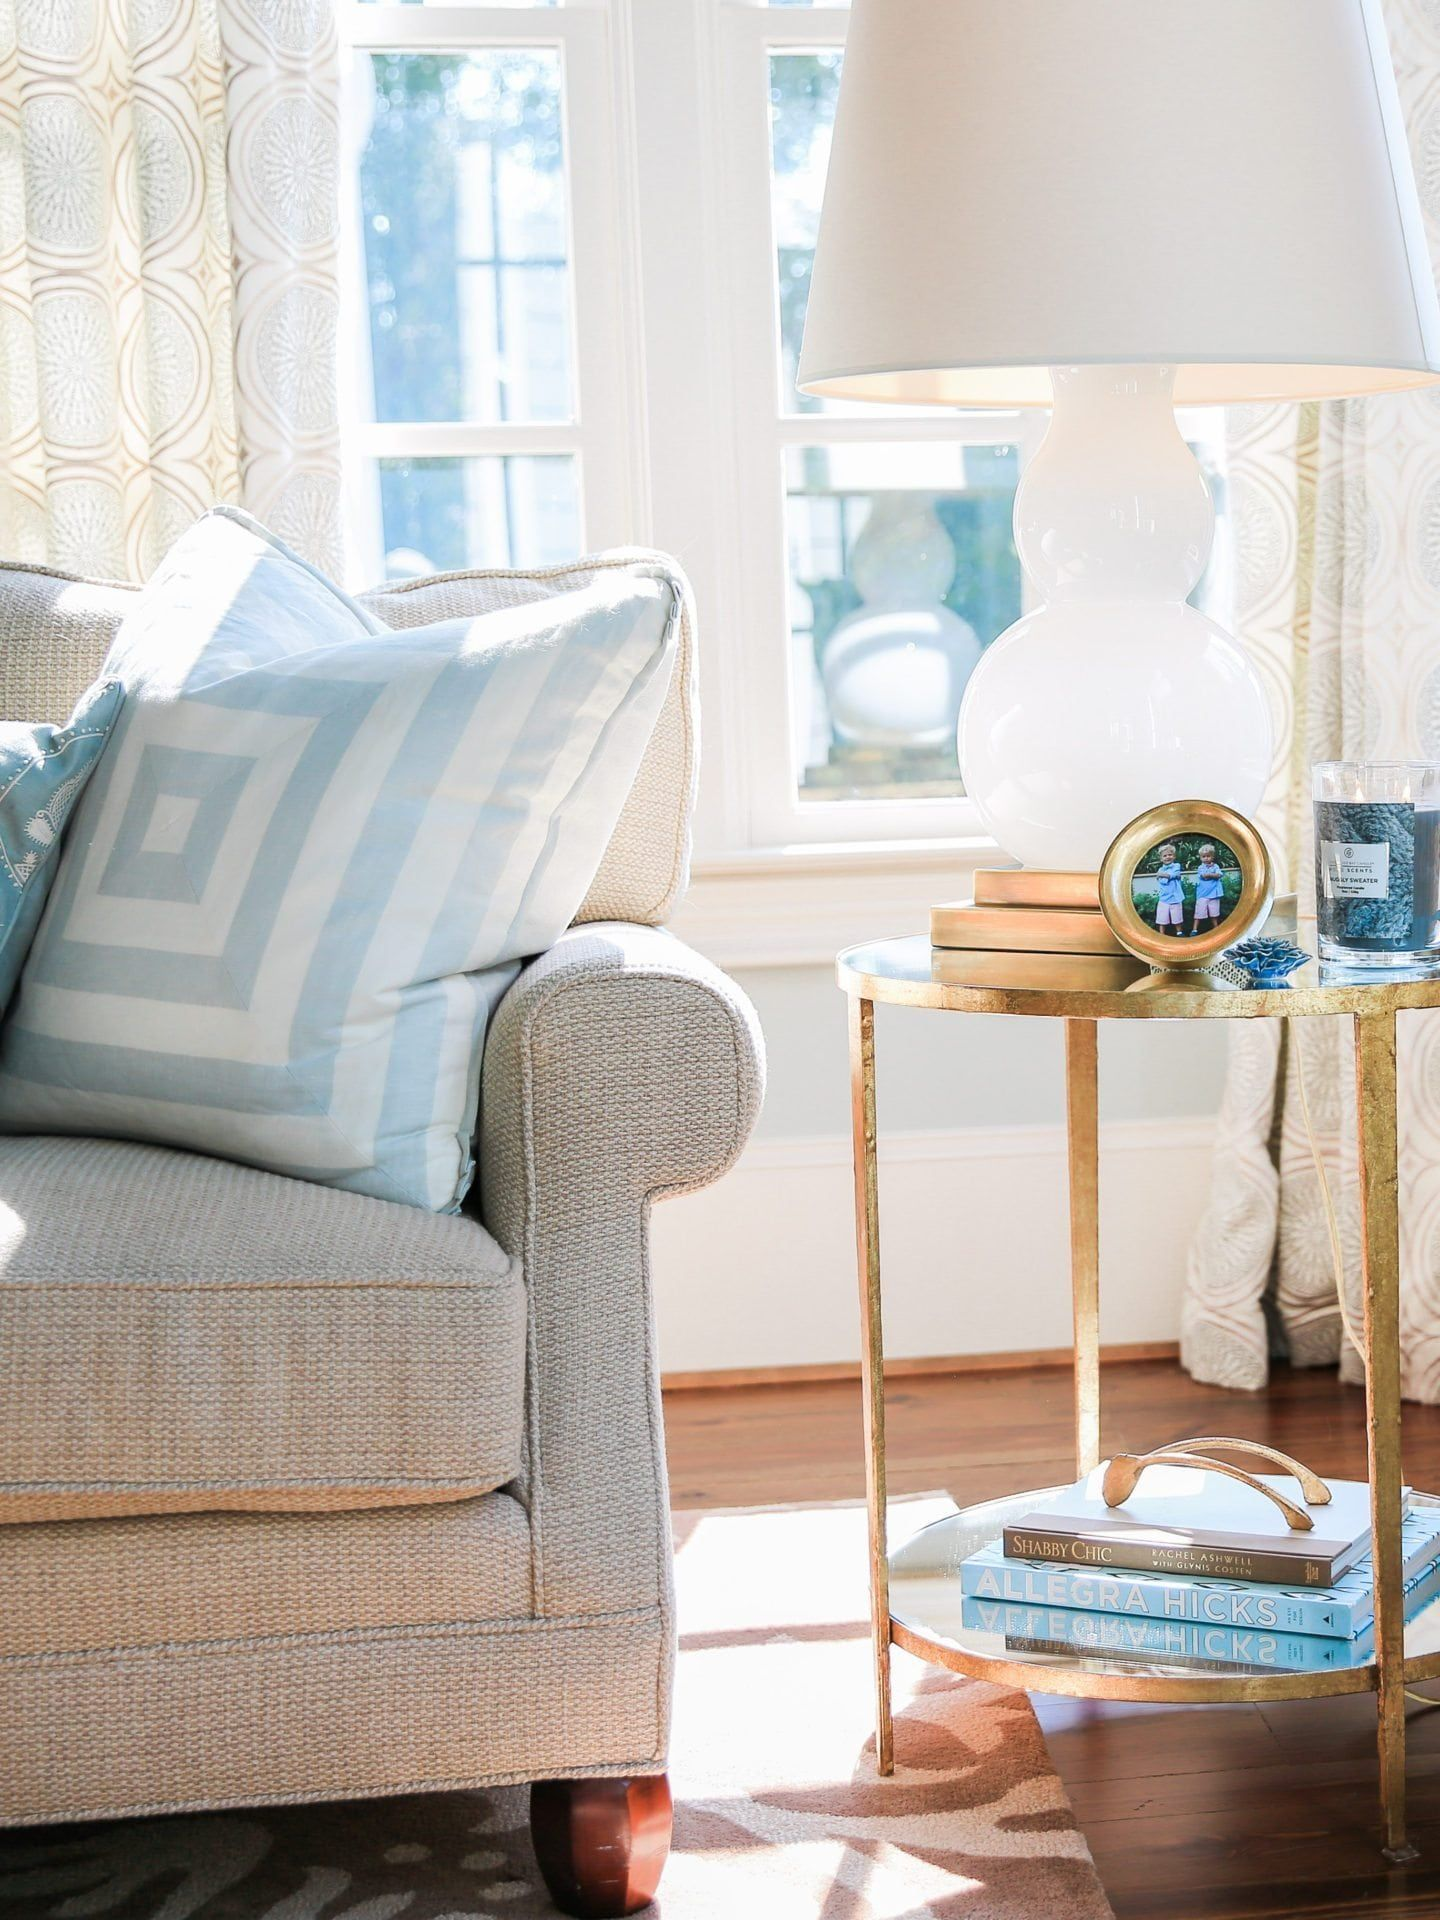 3 Easy Design Tips On How To Decorate Living Room Decor Rooms